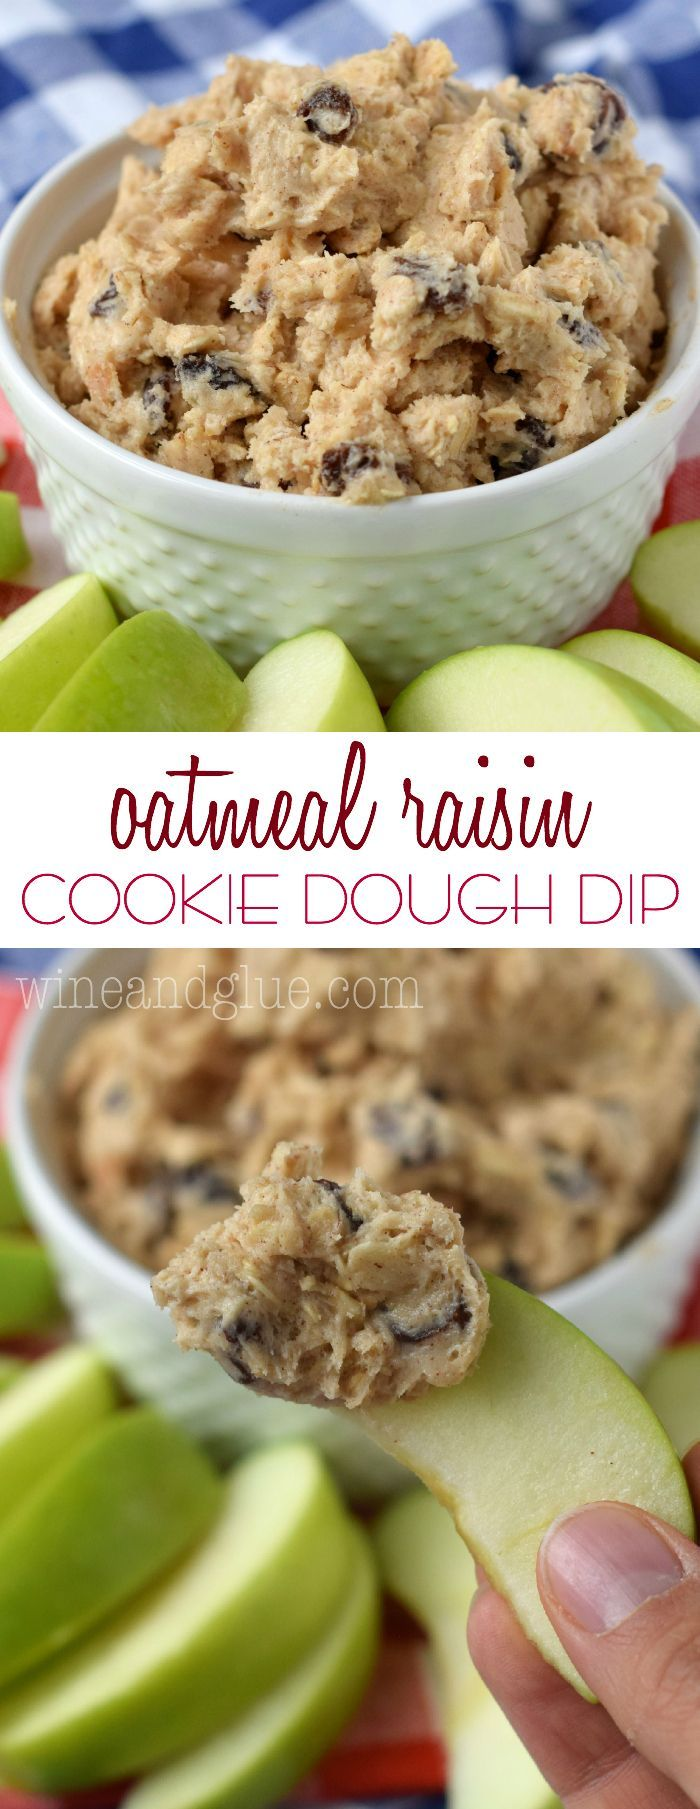 Oatmeal Raisin Cookie Dough Dip is so simple to whip together, that it will quickly become your new favorite sweet dip for parties! Serve it with green apples and graham crackers.